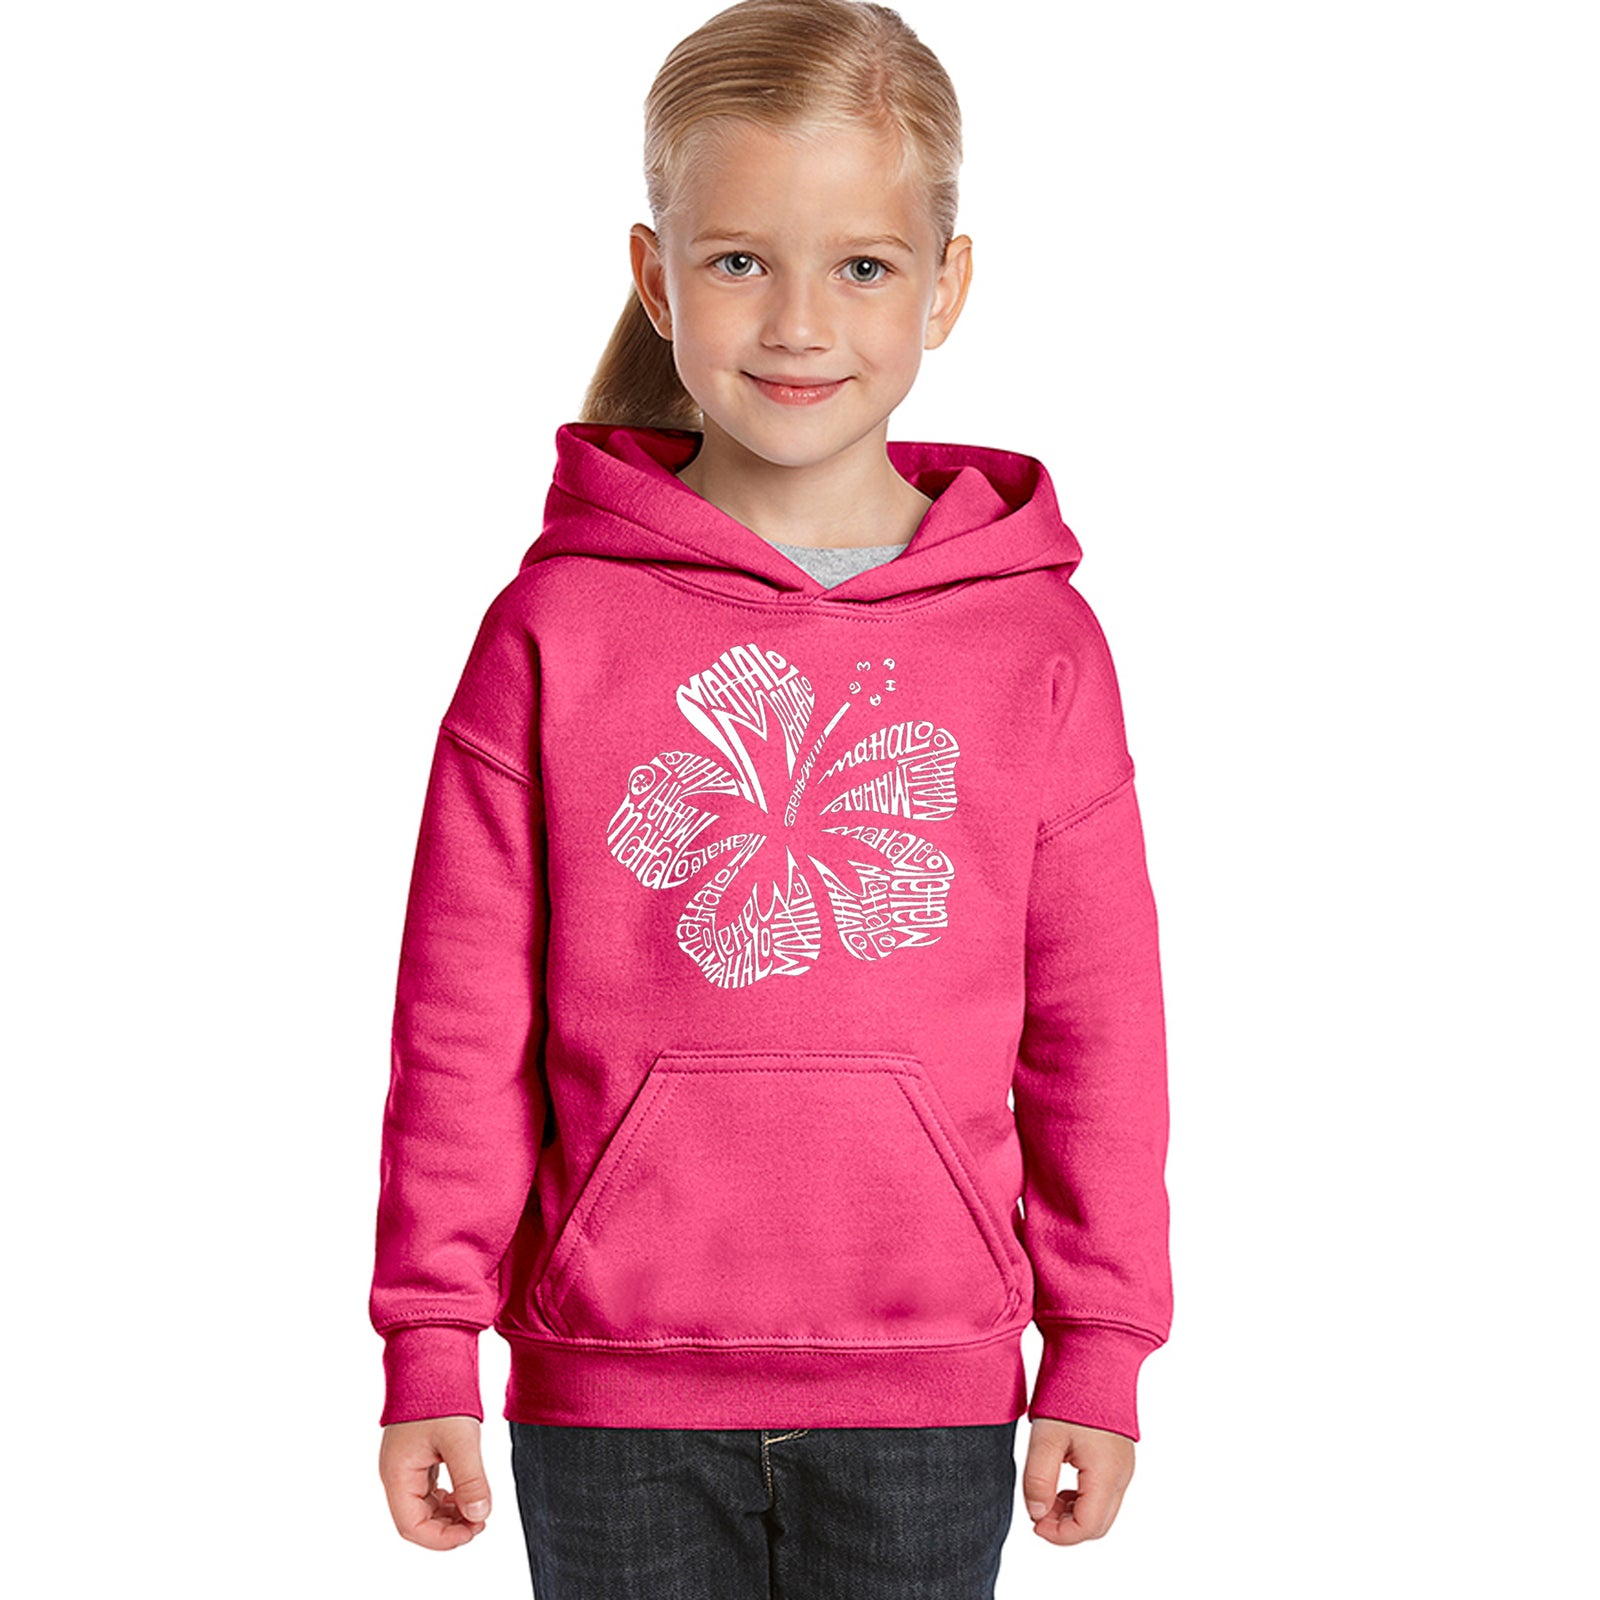 Girl's Hooded Sweatshirt - Mahalo